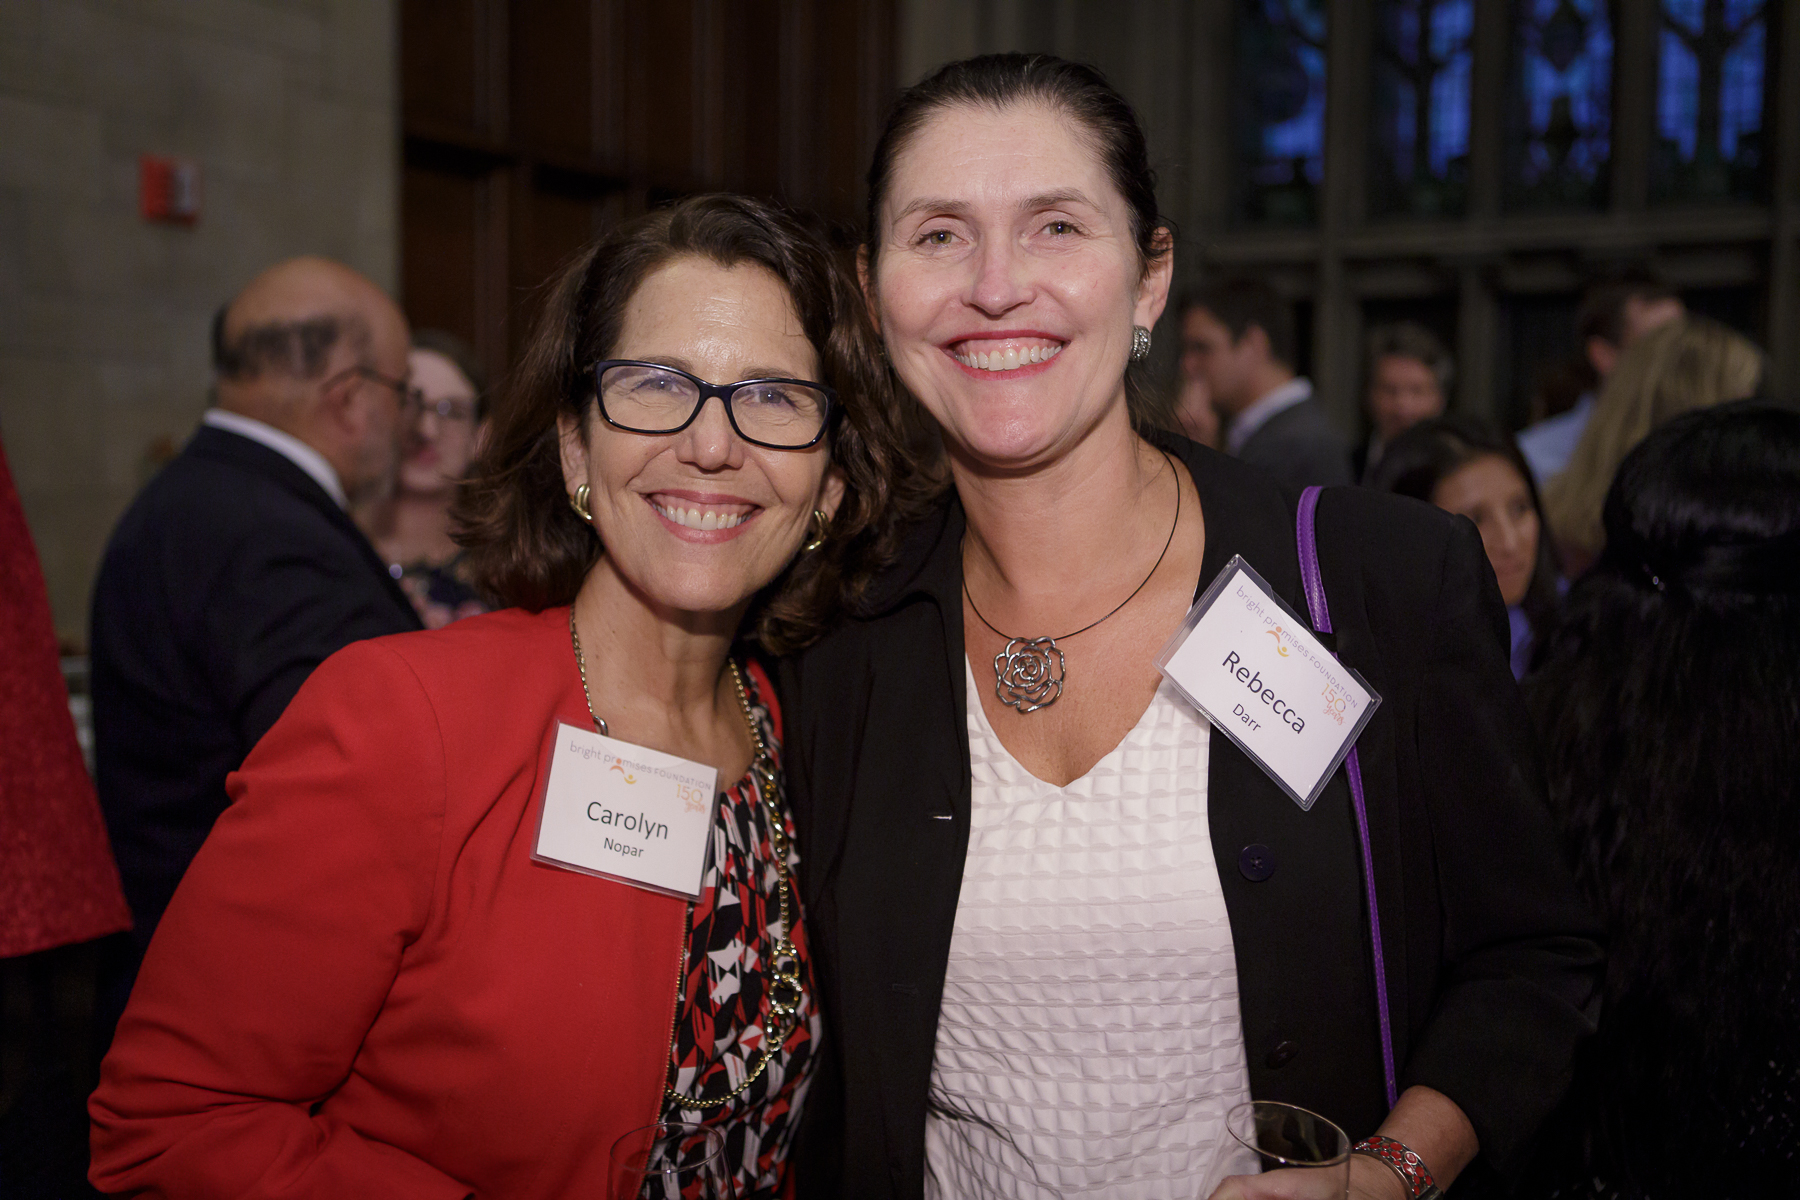 2018 Awards guests Carolyn Nopar (left) and Rebecca Darr (right) (Photo by Stephen J. Serio Photography)